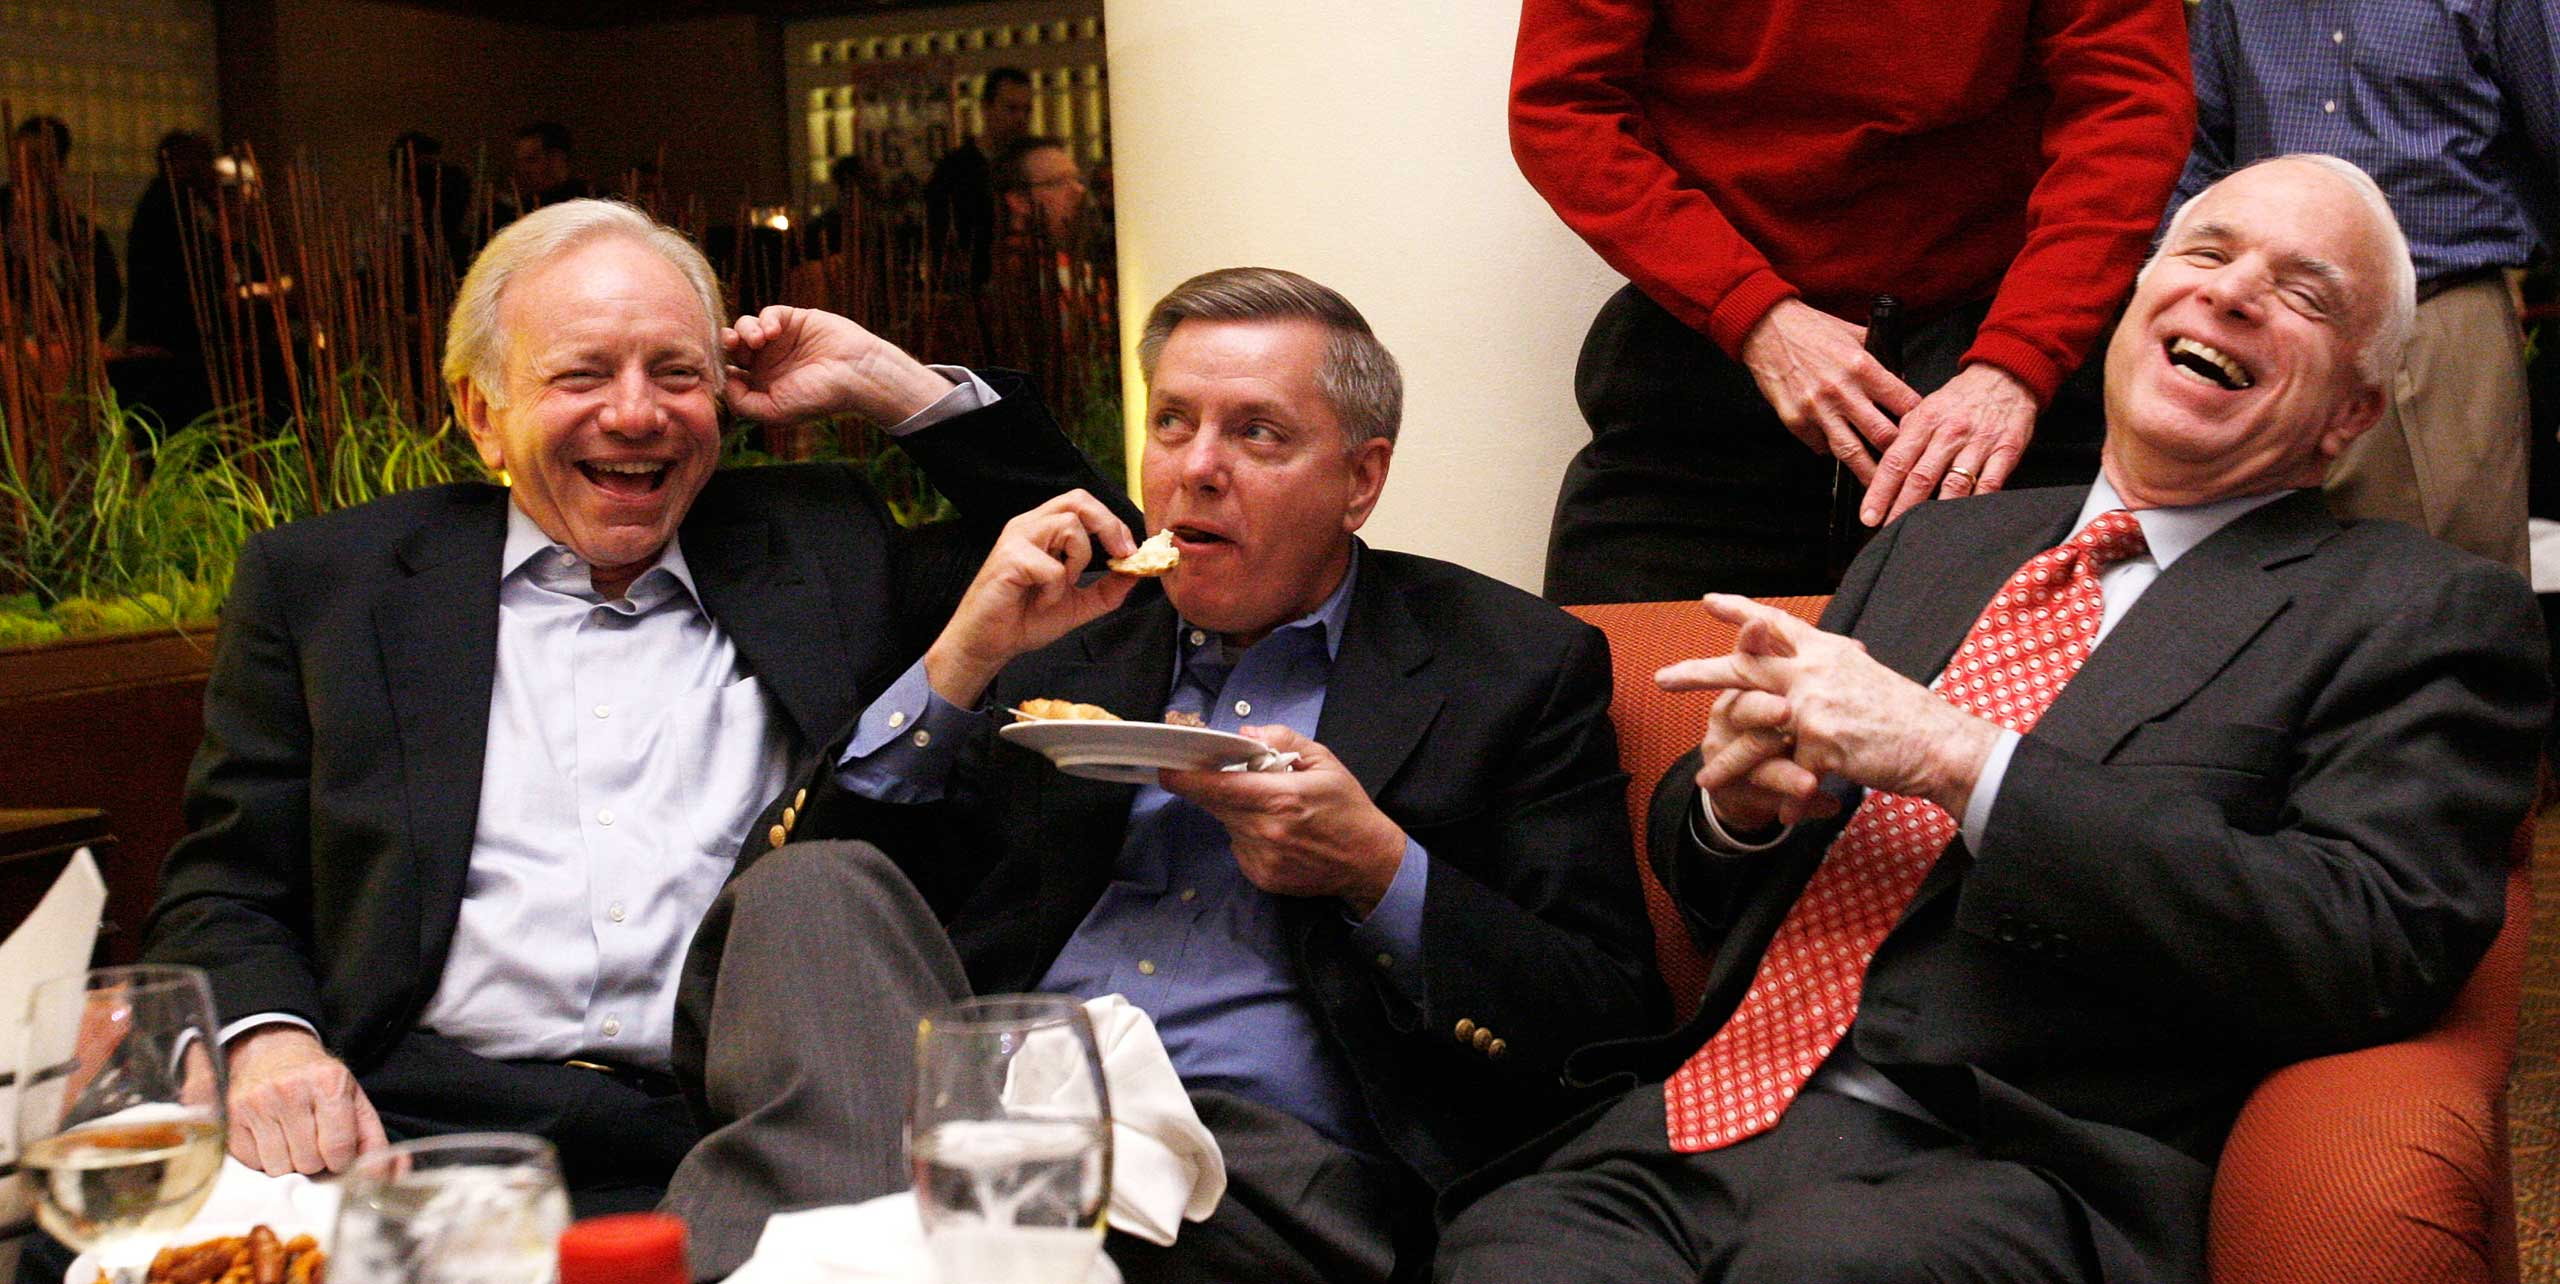 The three Senators watched the Super Bowl in a hotel lobby bar during the 2008 campaign.